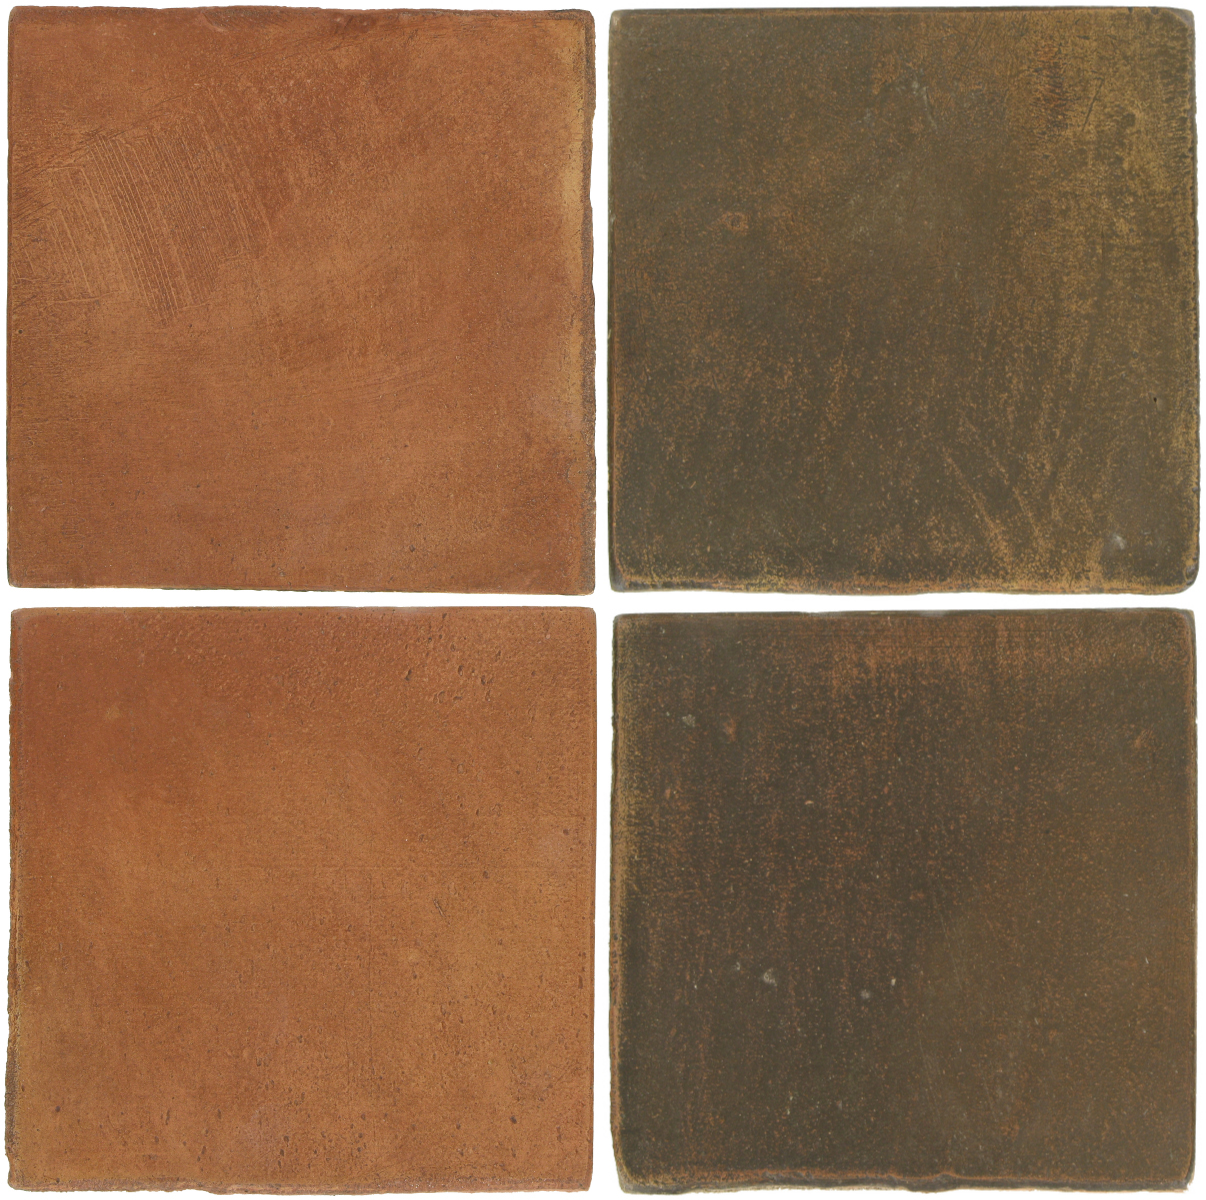 Pedralbes Antique Terracotta  2 Color Combinations  OHS-PSTR Traditional + OHS-PSVN Verona Brown